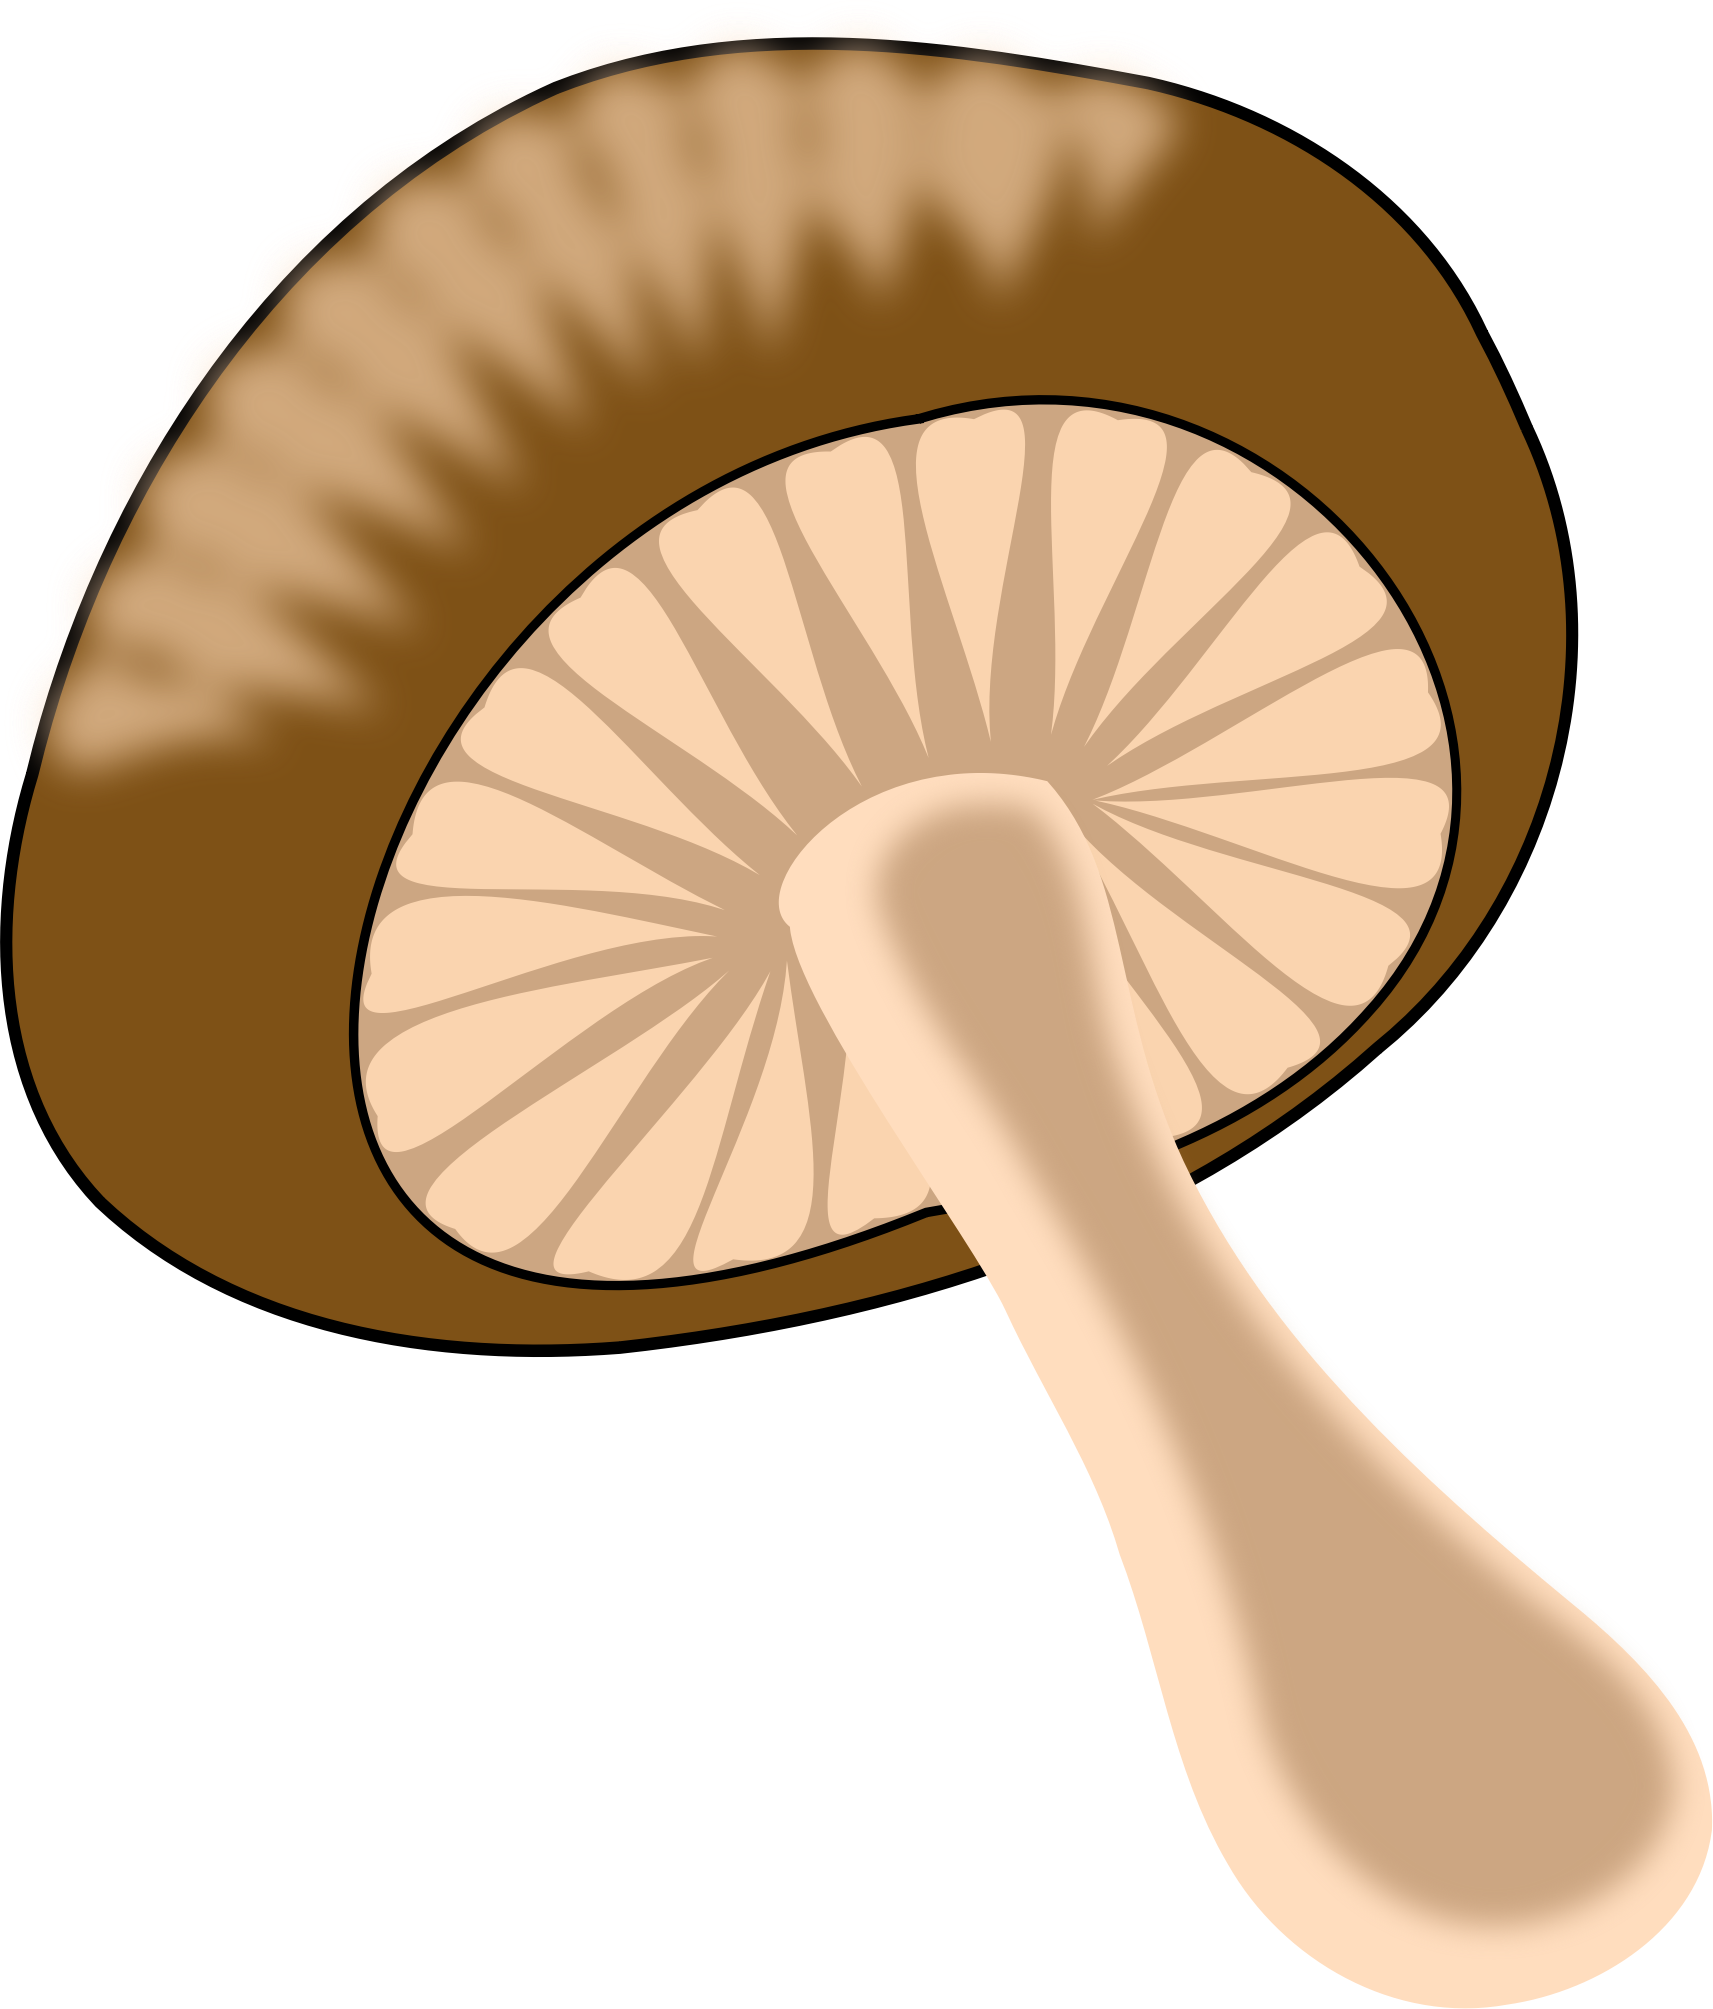 Clipart png mushroom. Green orange big image